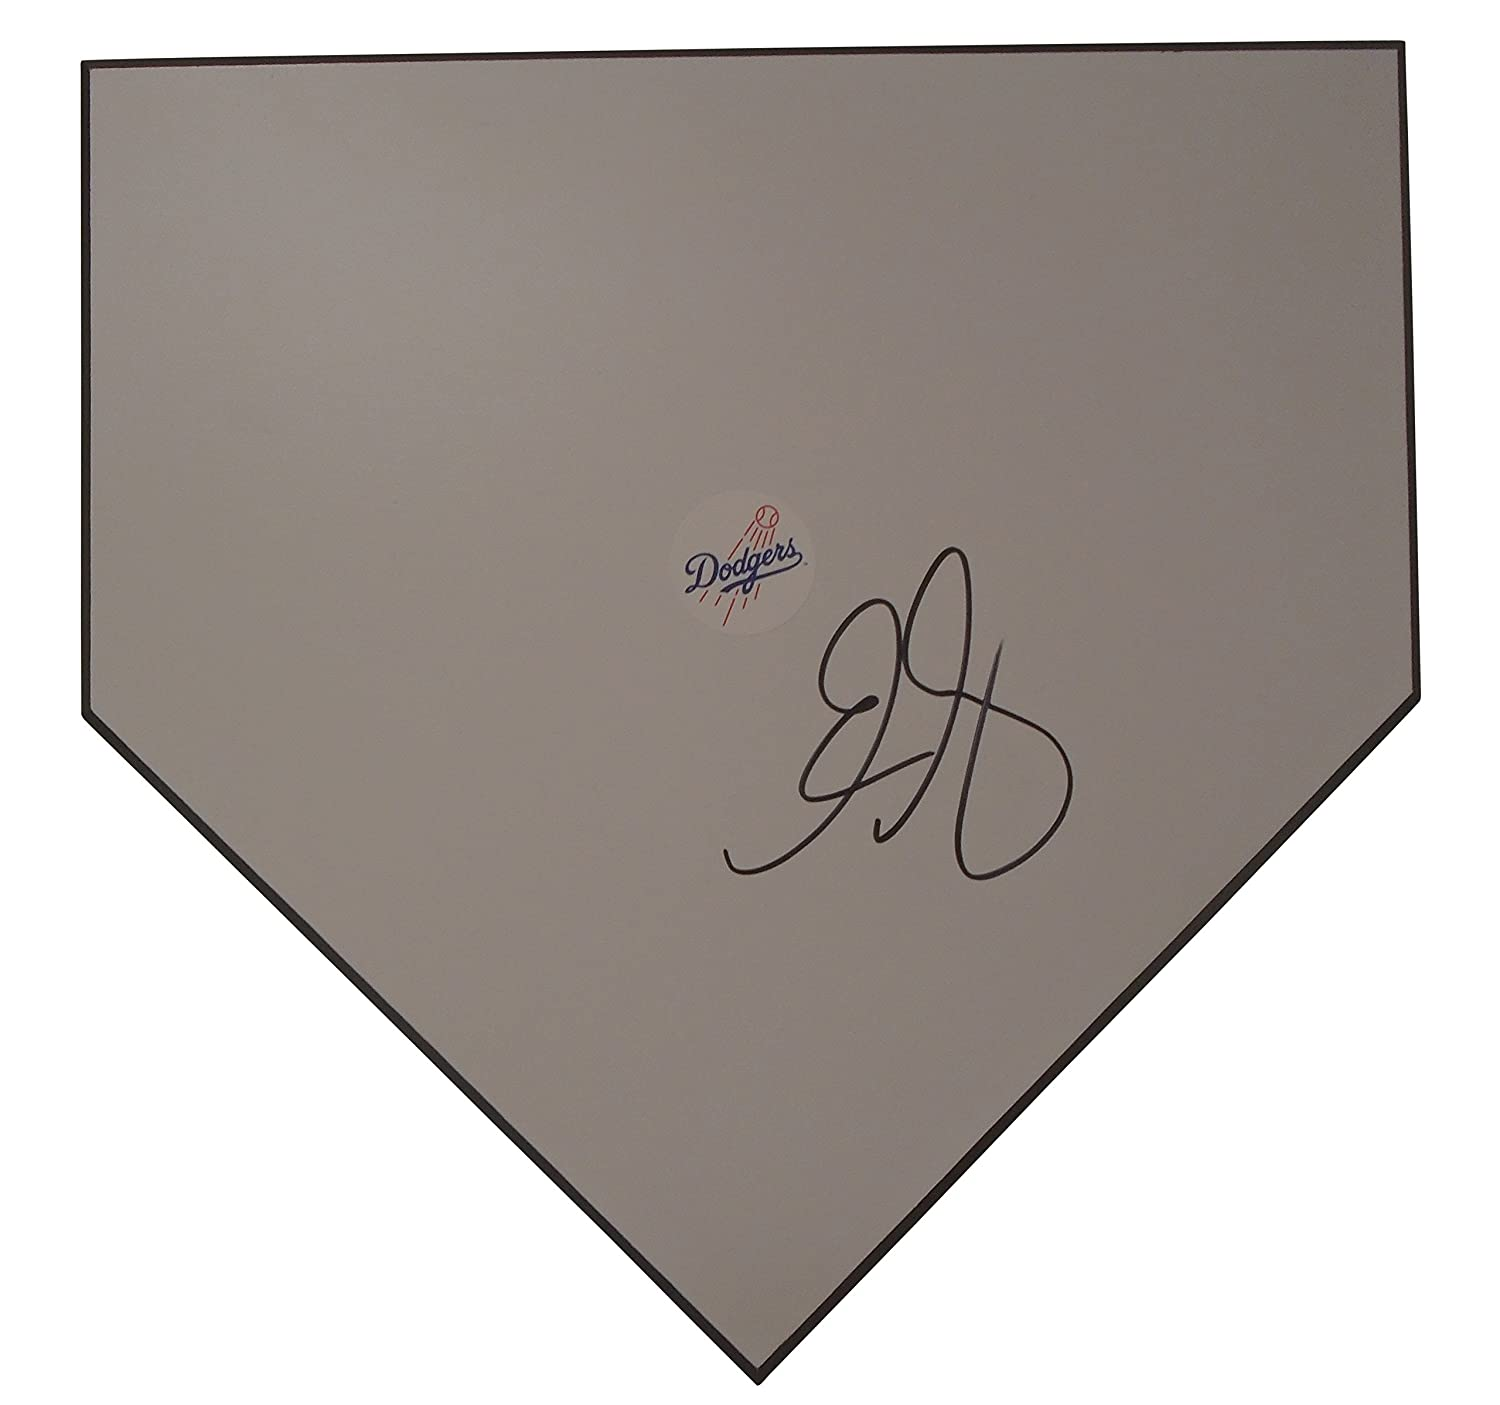 Los Angeles Dodgers Eric Gagne Autographed Hand Signed Baseball Home Plate Base with Proof Photo of Signing and COA- LA Dodgers Collectibles Southwestconnection-Memorabilia